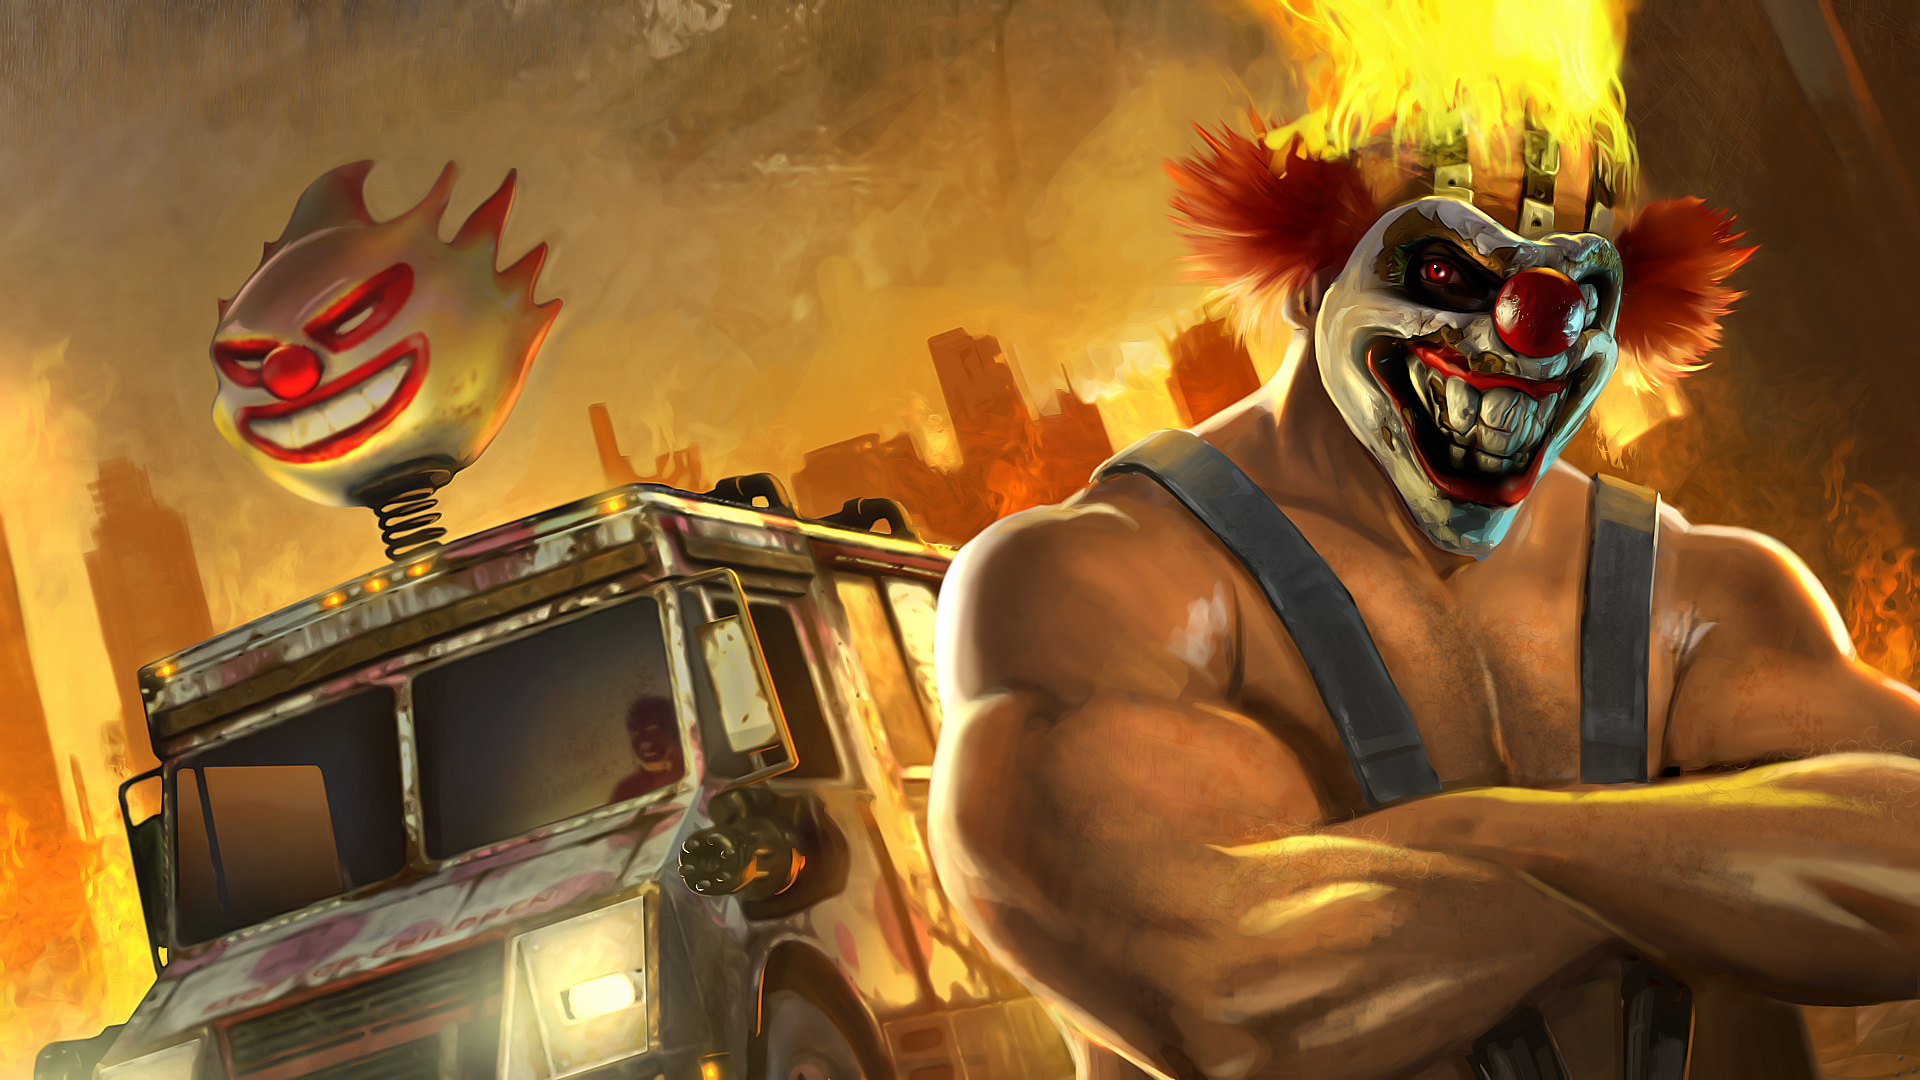 Twisted Metal series's Sweet Tooth Receives Adaptation | dorkaholics